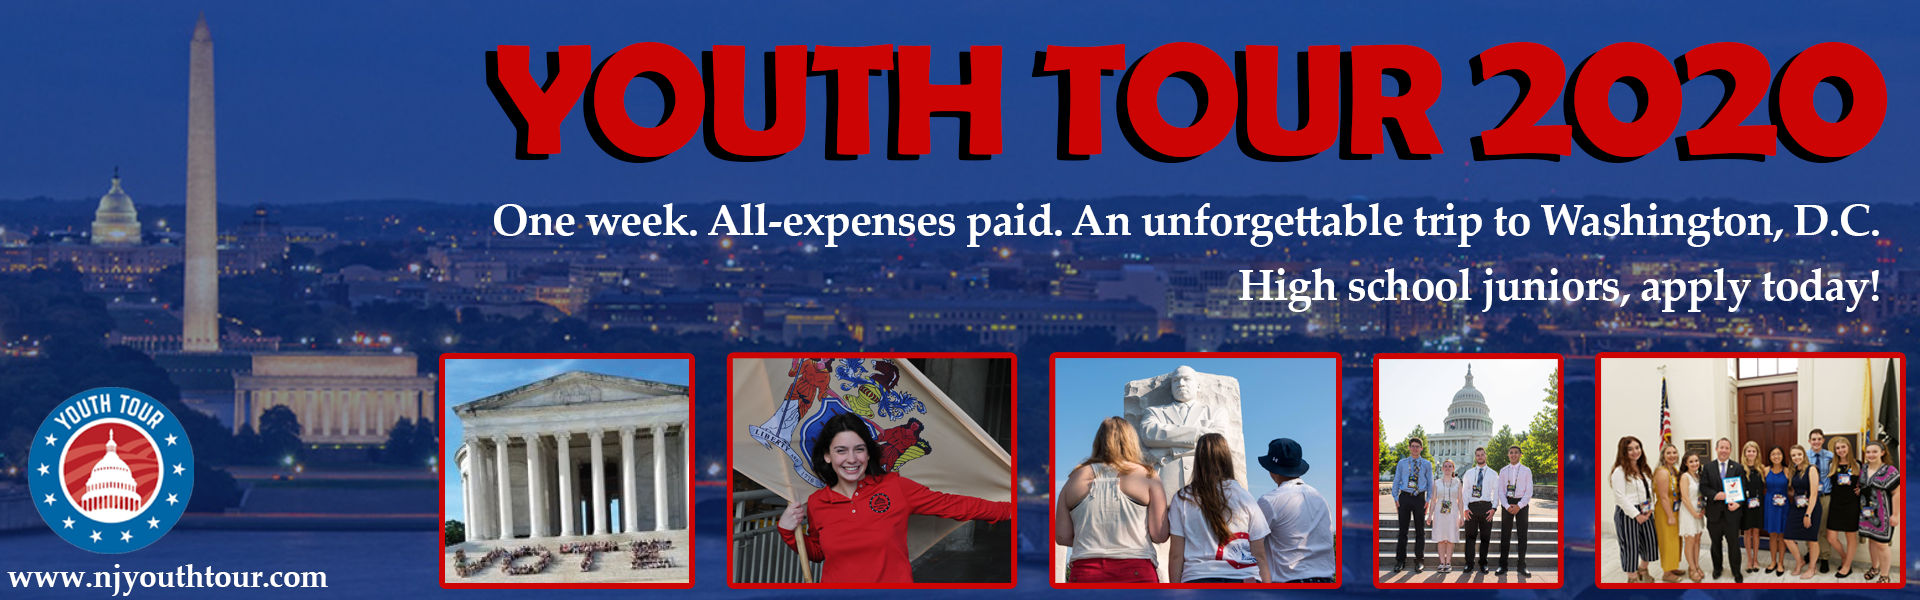 Youth Tour 2020 - Apply Today!